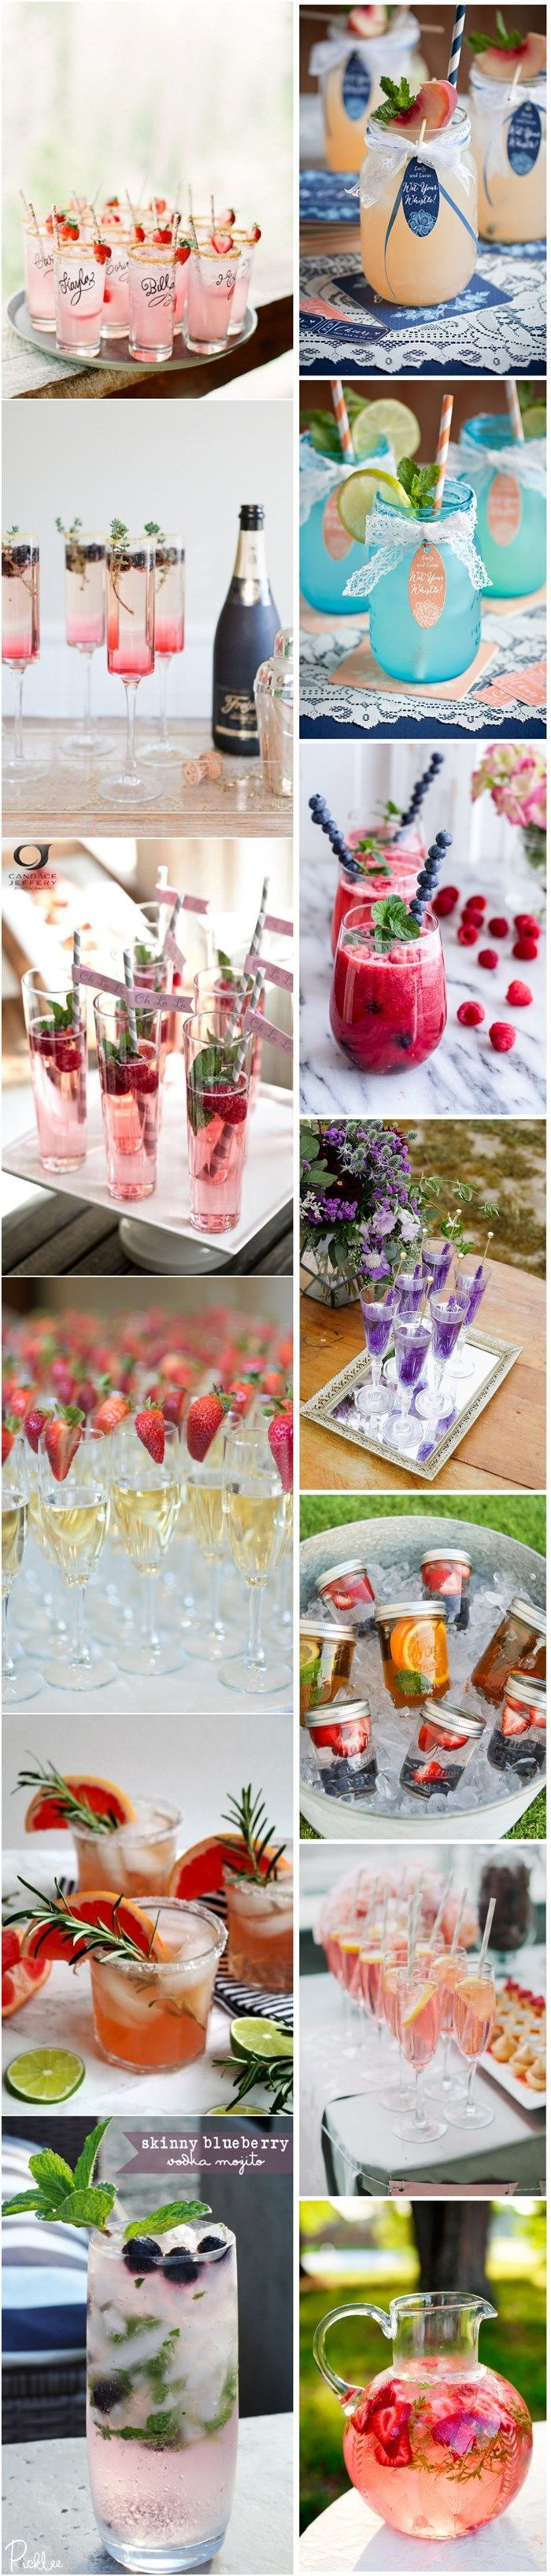 50+ Fruity Signature Wedding Drinks